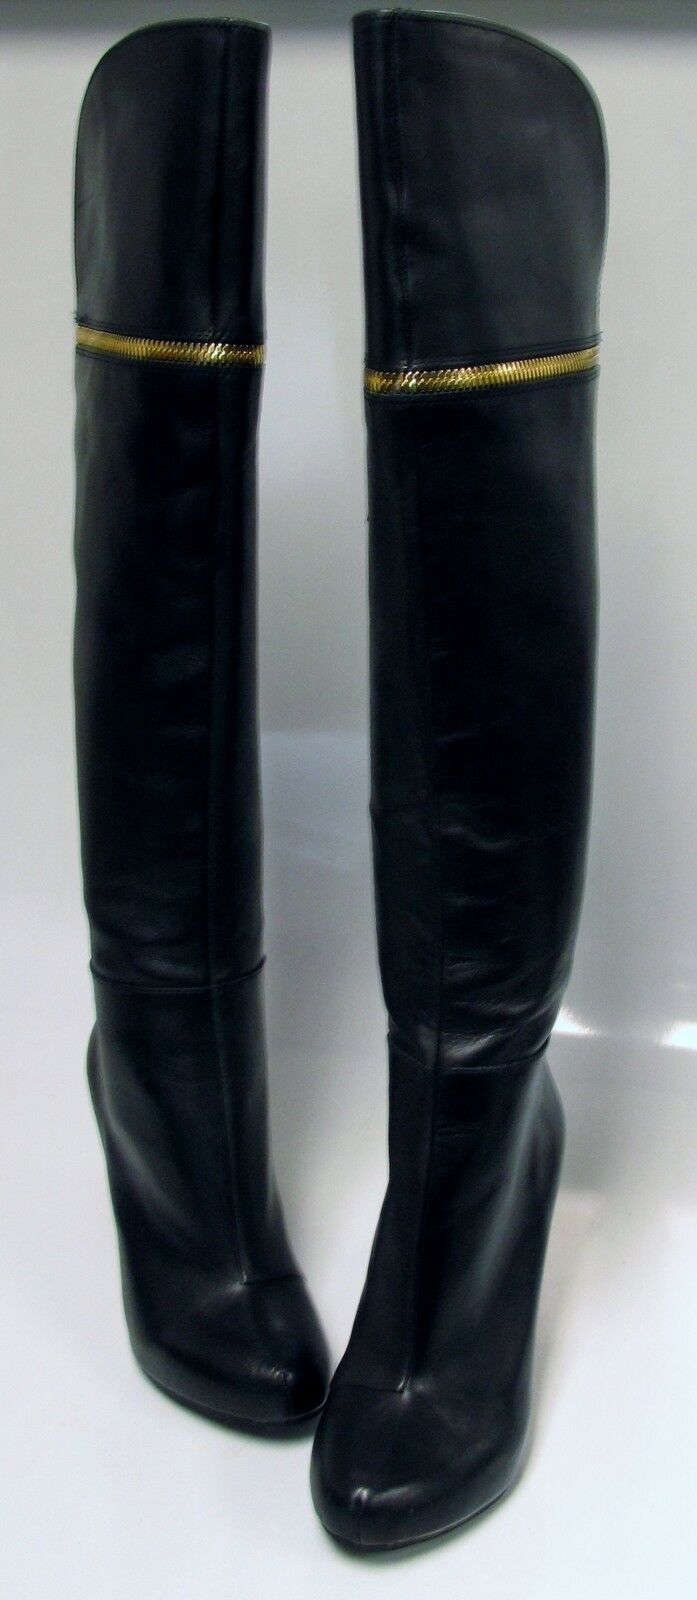 BAR III Women's CECIL Over the Knee Black Leather Dress Boots US 7 M 4